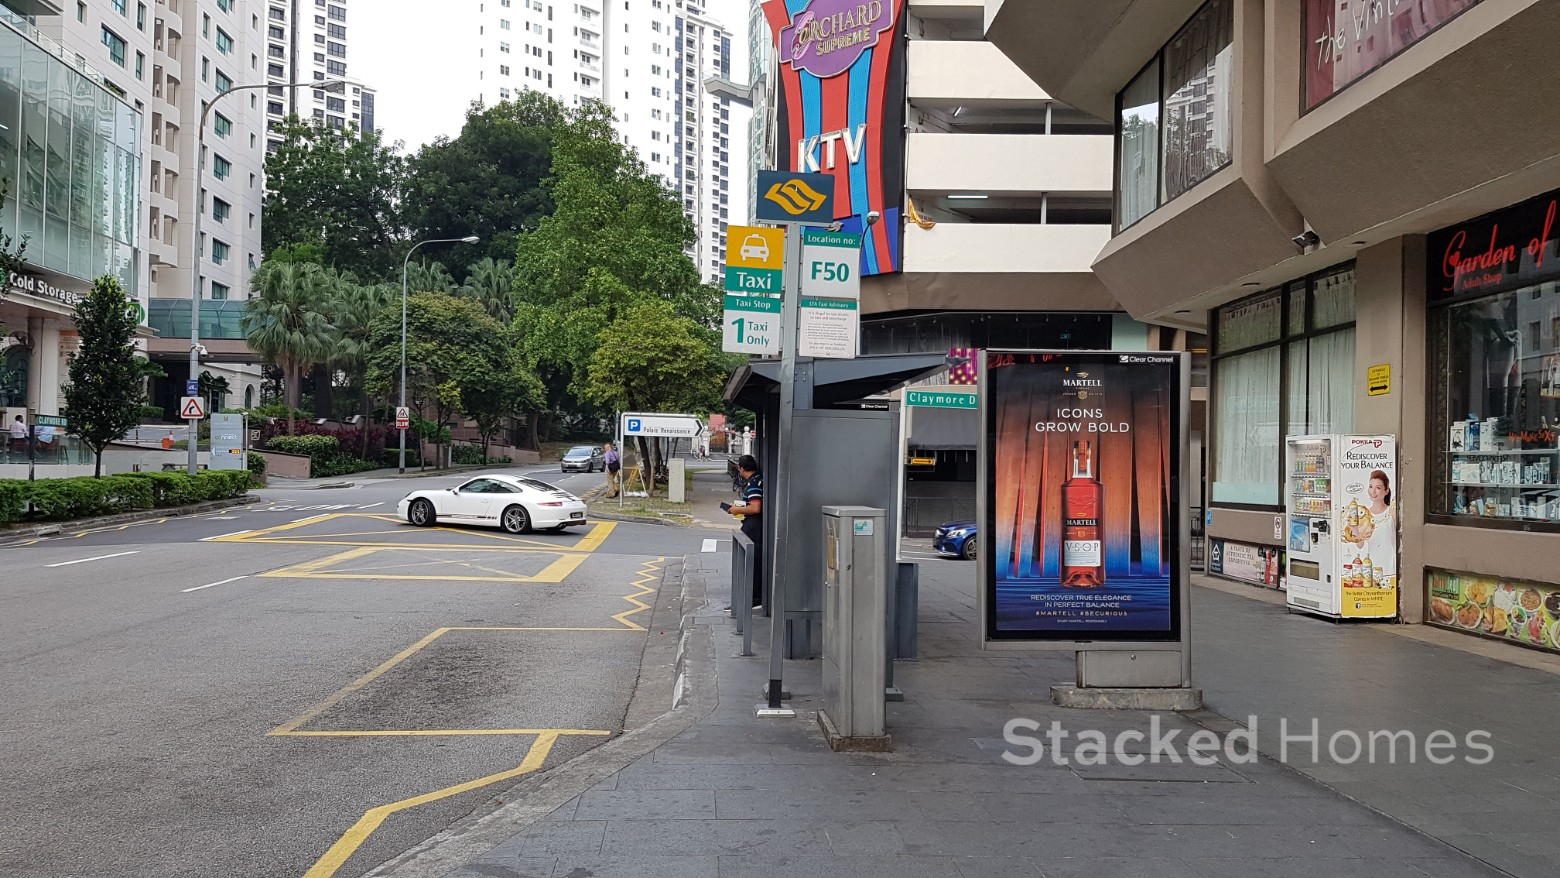 orchard towers bus stop